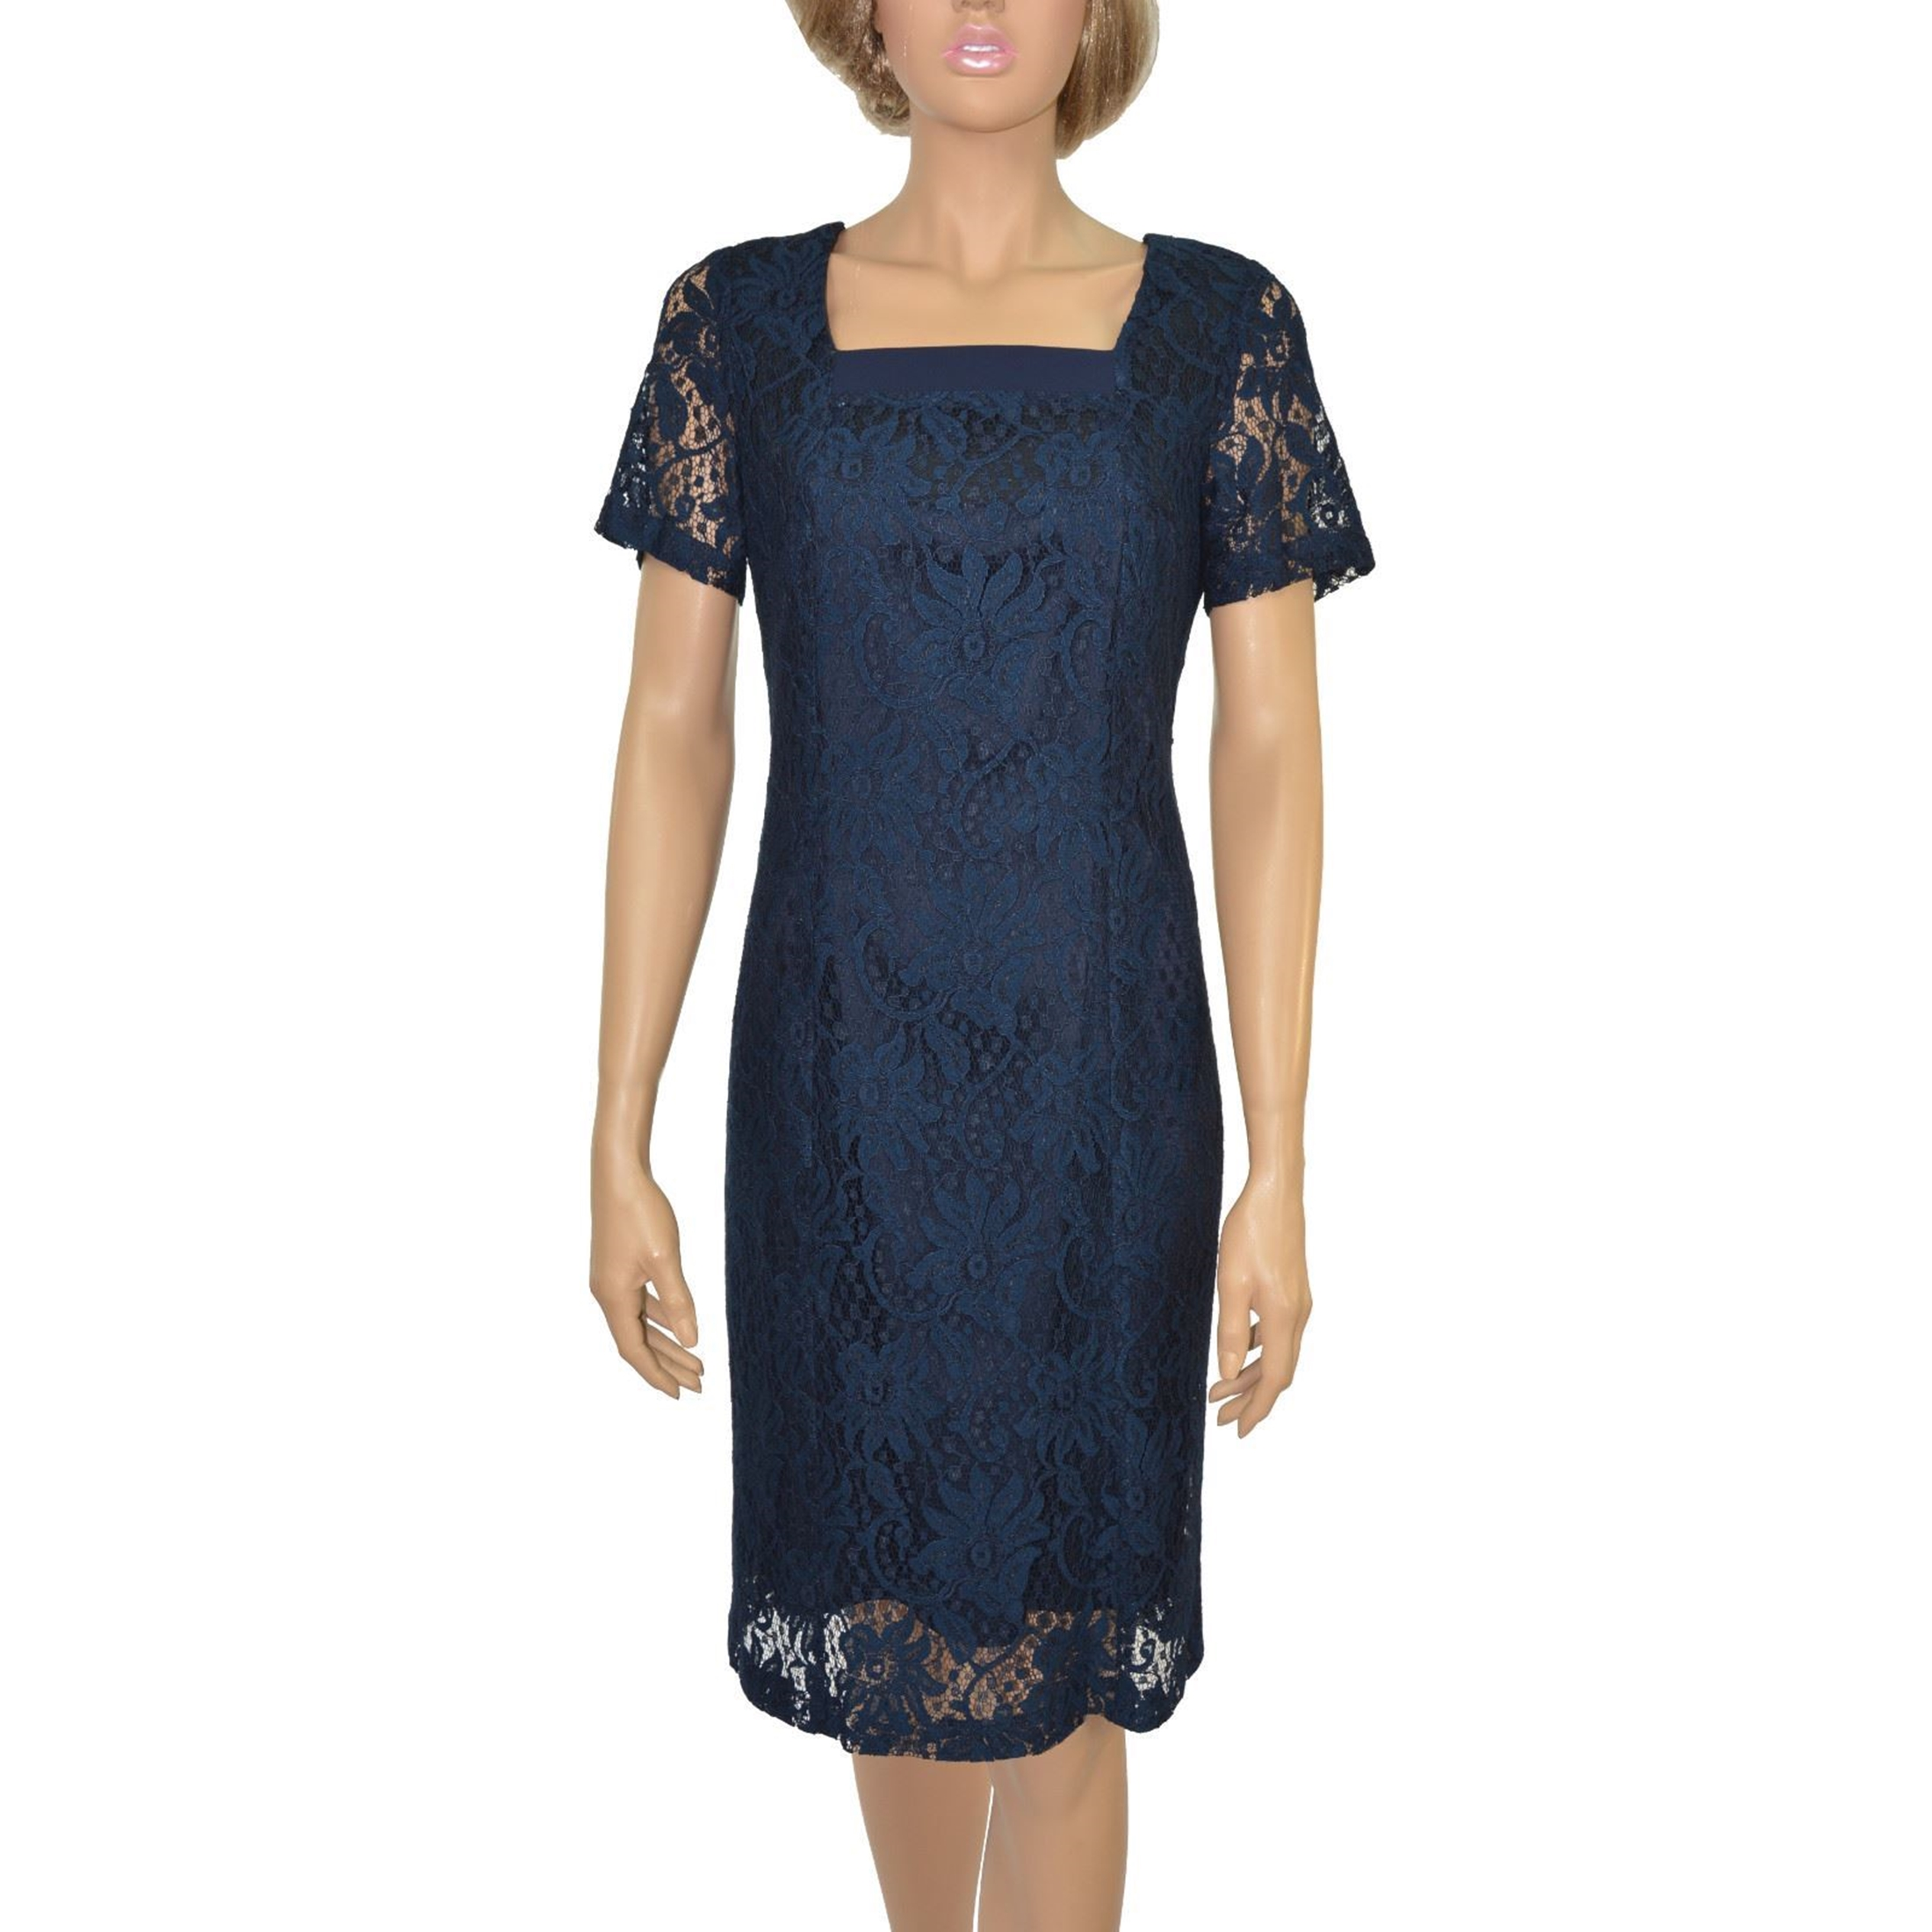 Picture of Women's Dress - LM451438 BLUE